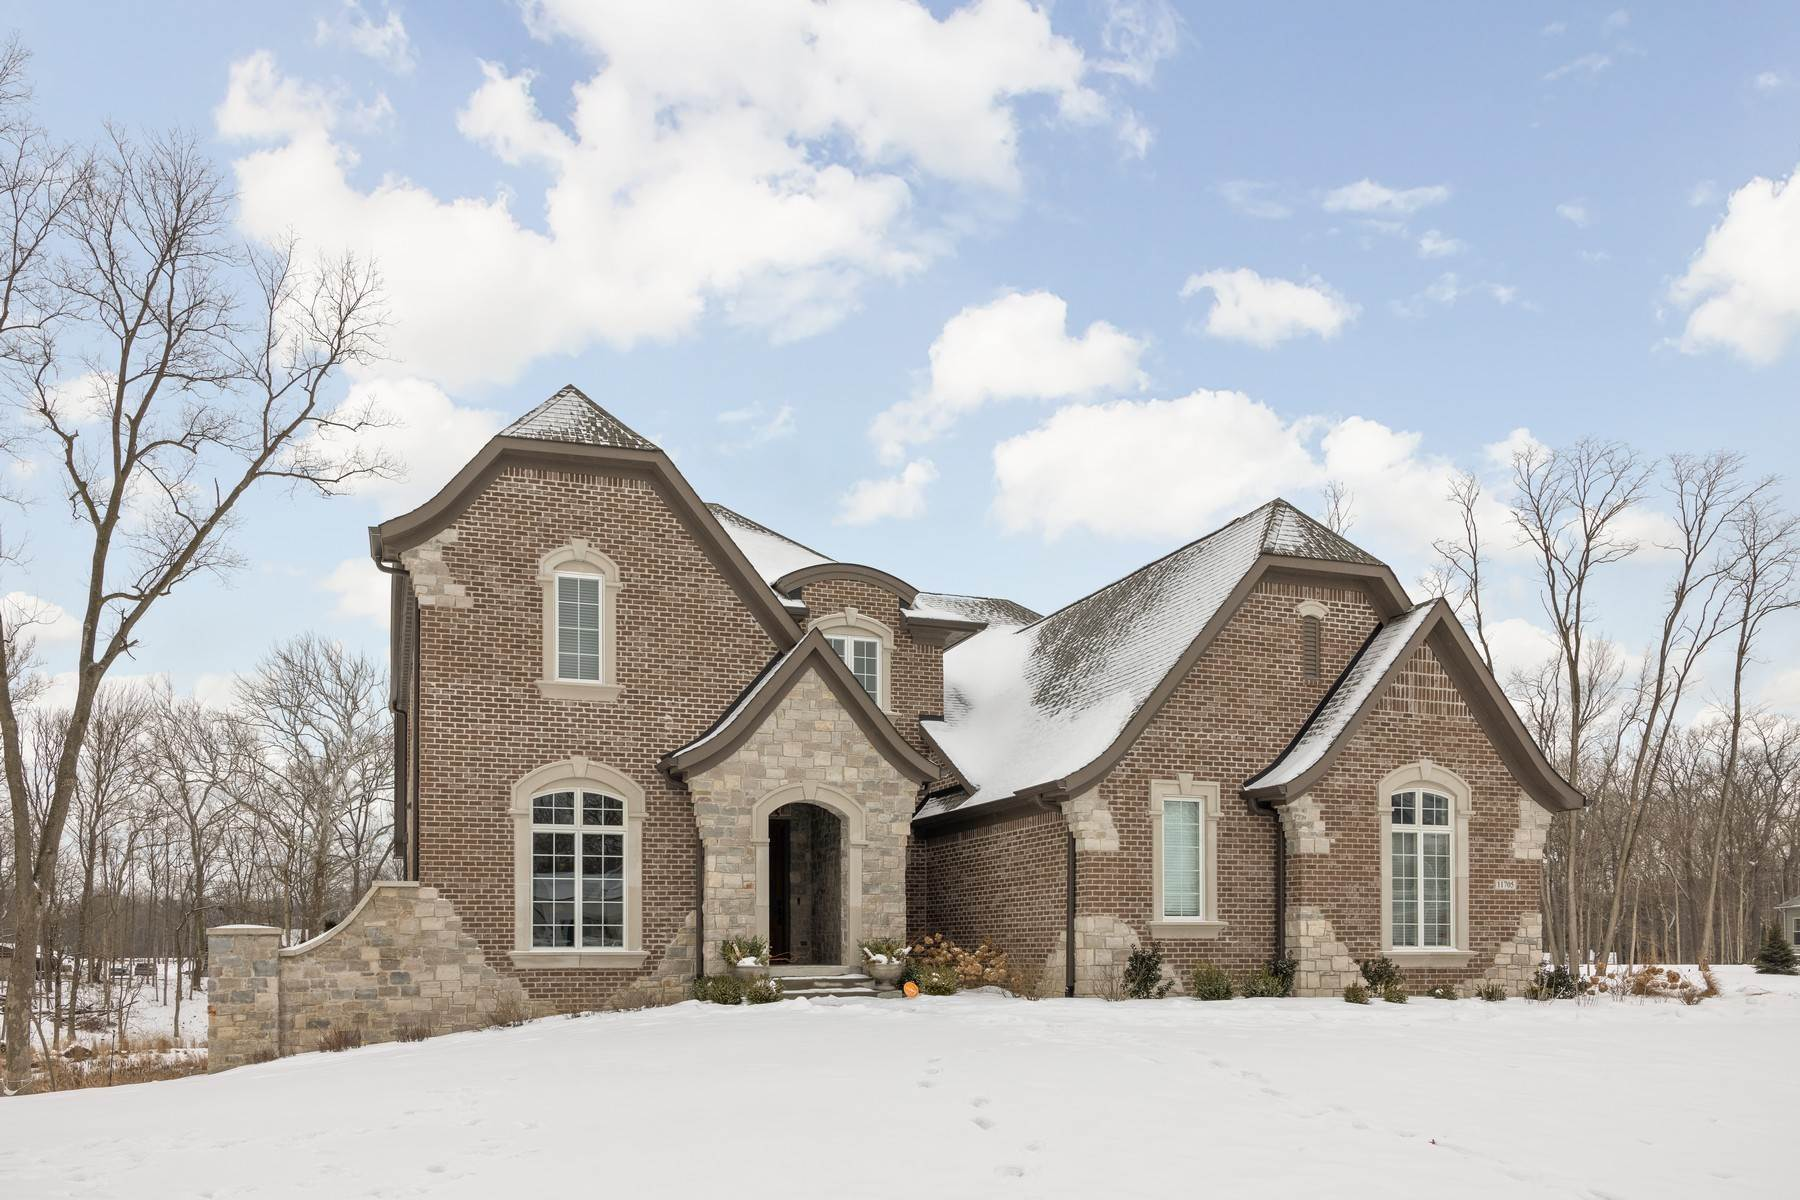 Single Family Homes pour l Vente à Stunning Home on Wooded Lot 11705 Walton Cres Zionsville, Indiana 46077 États-Unis